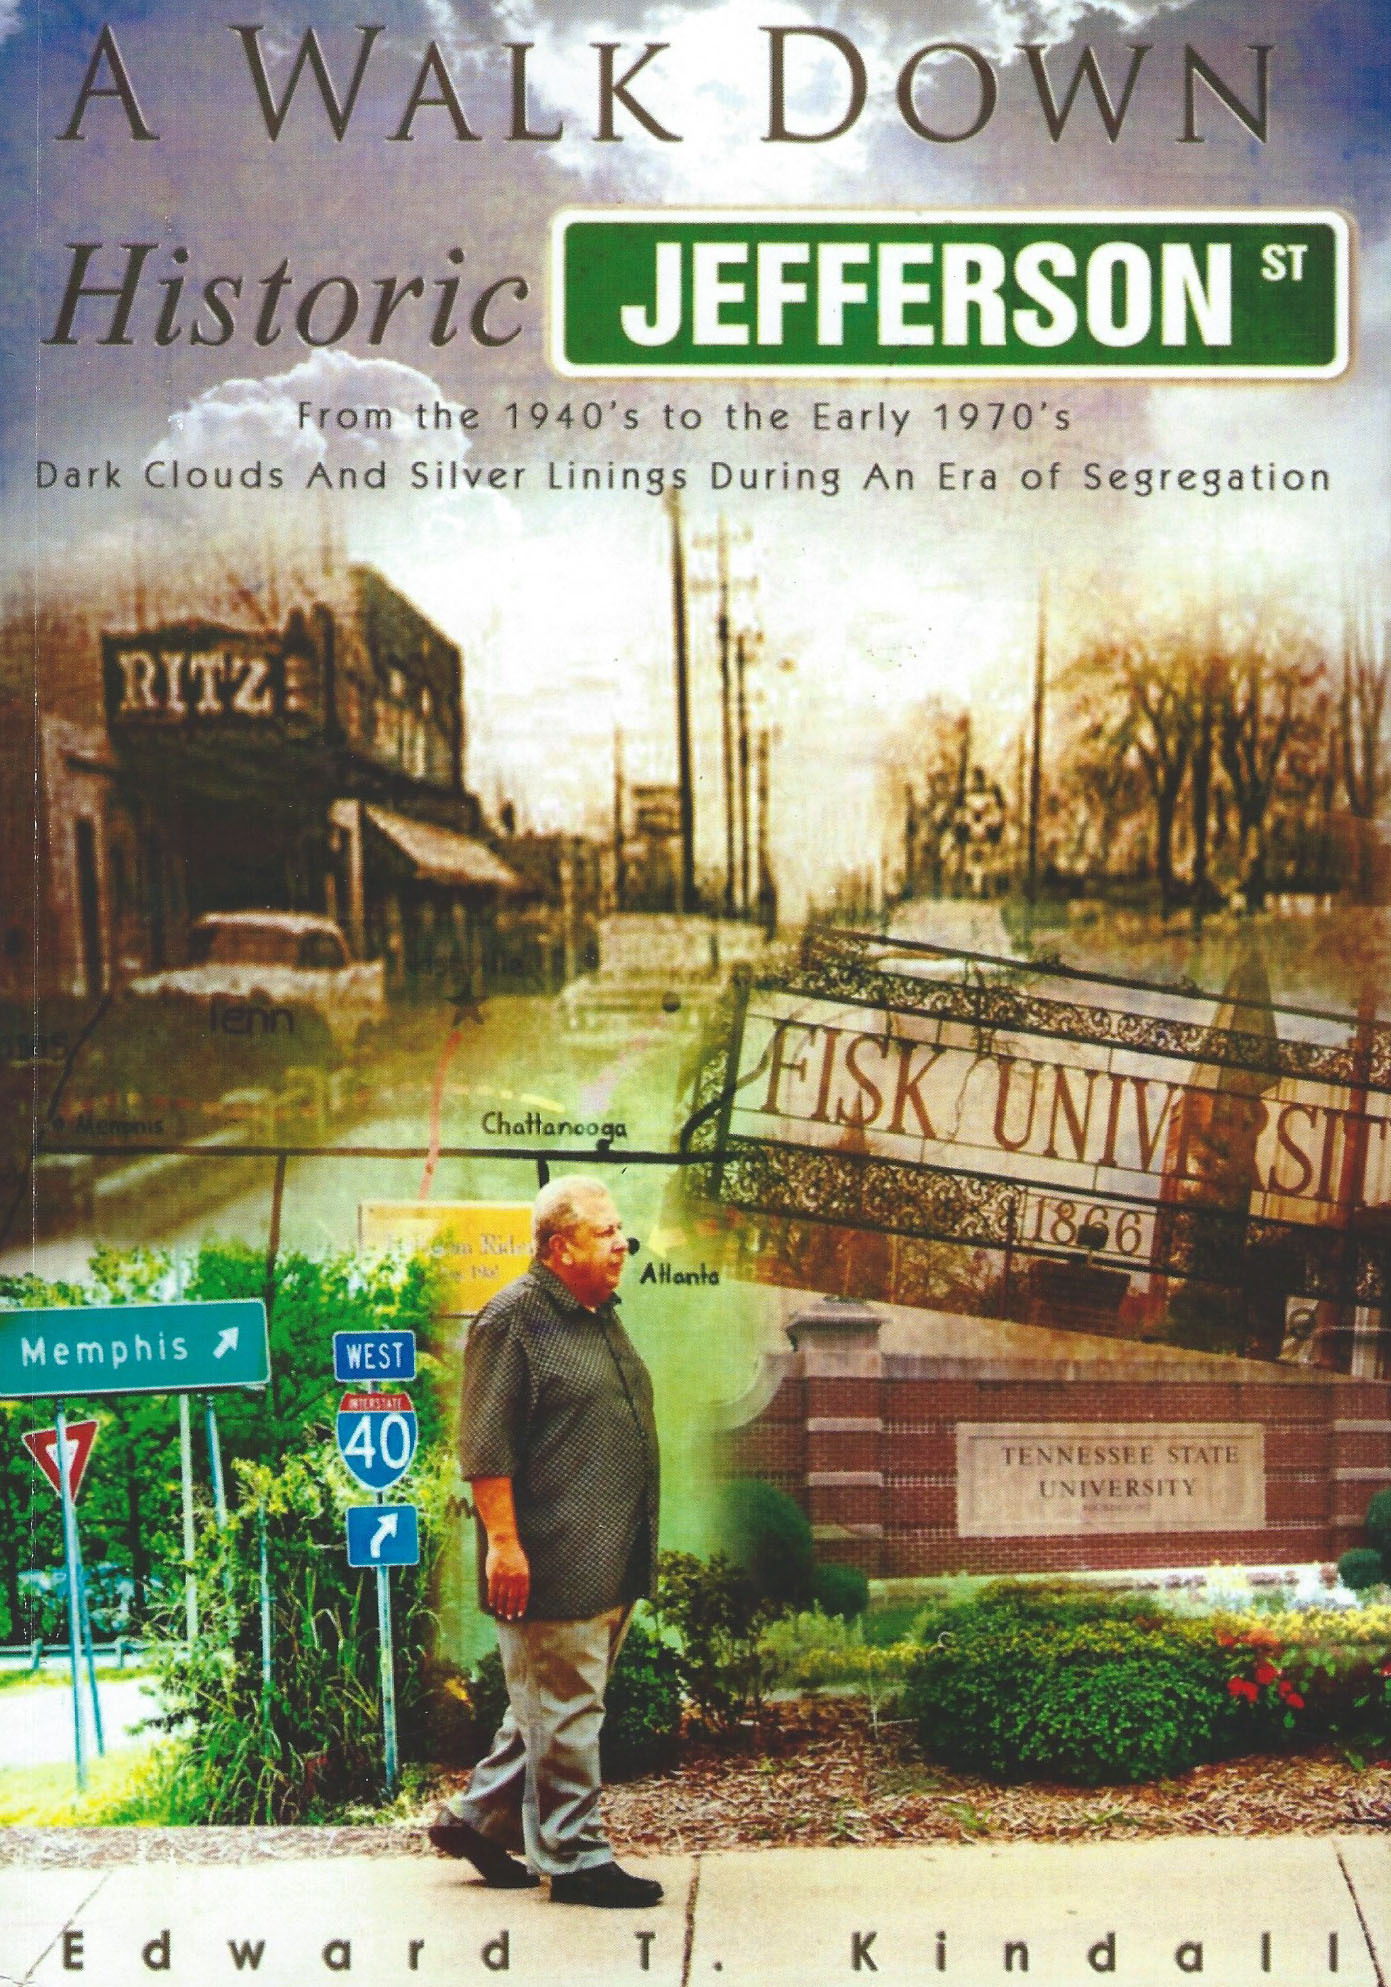 A Walk Down Historic Jefferson Street / From the 1940's to the Early 70's - Dark Clouds and Silver Linings During an Era of Segregation